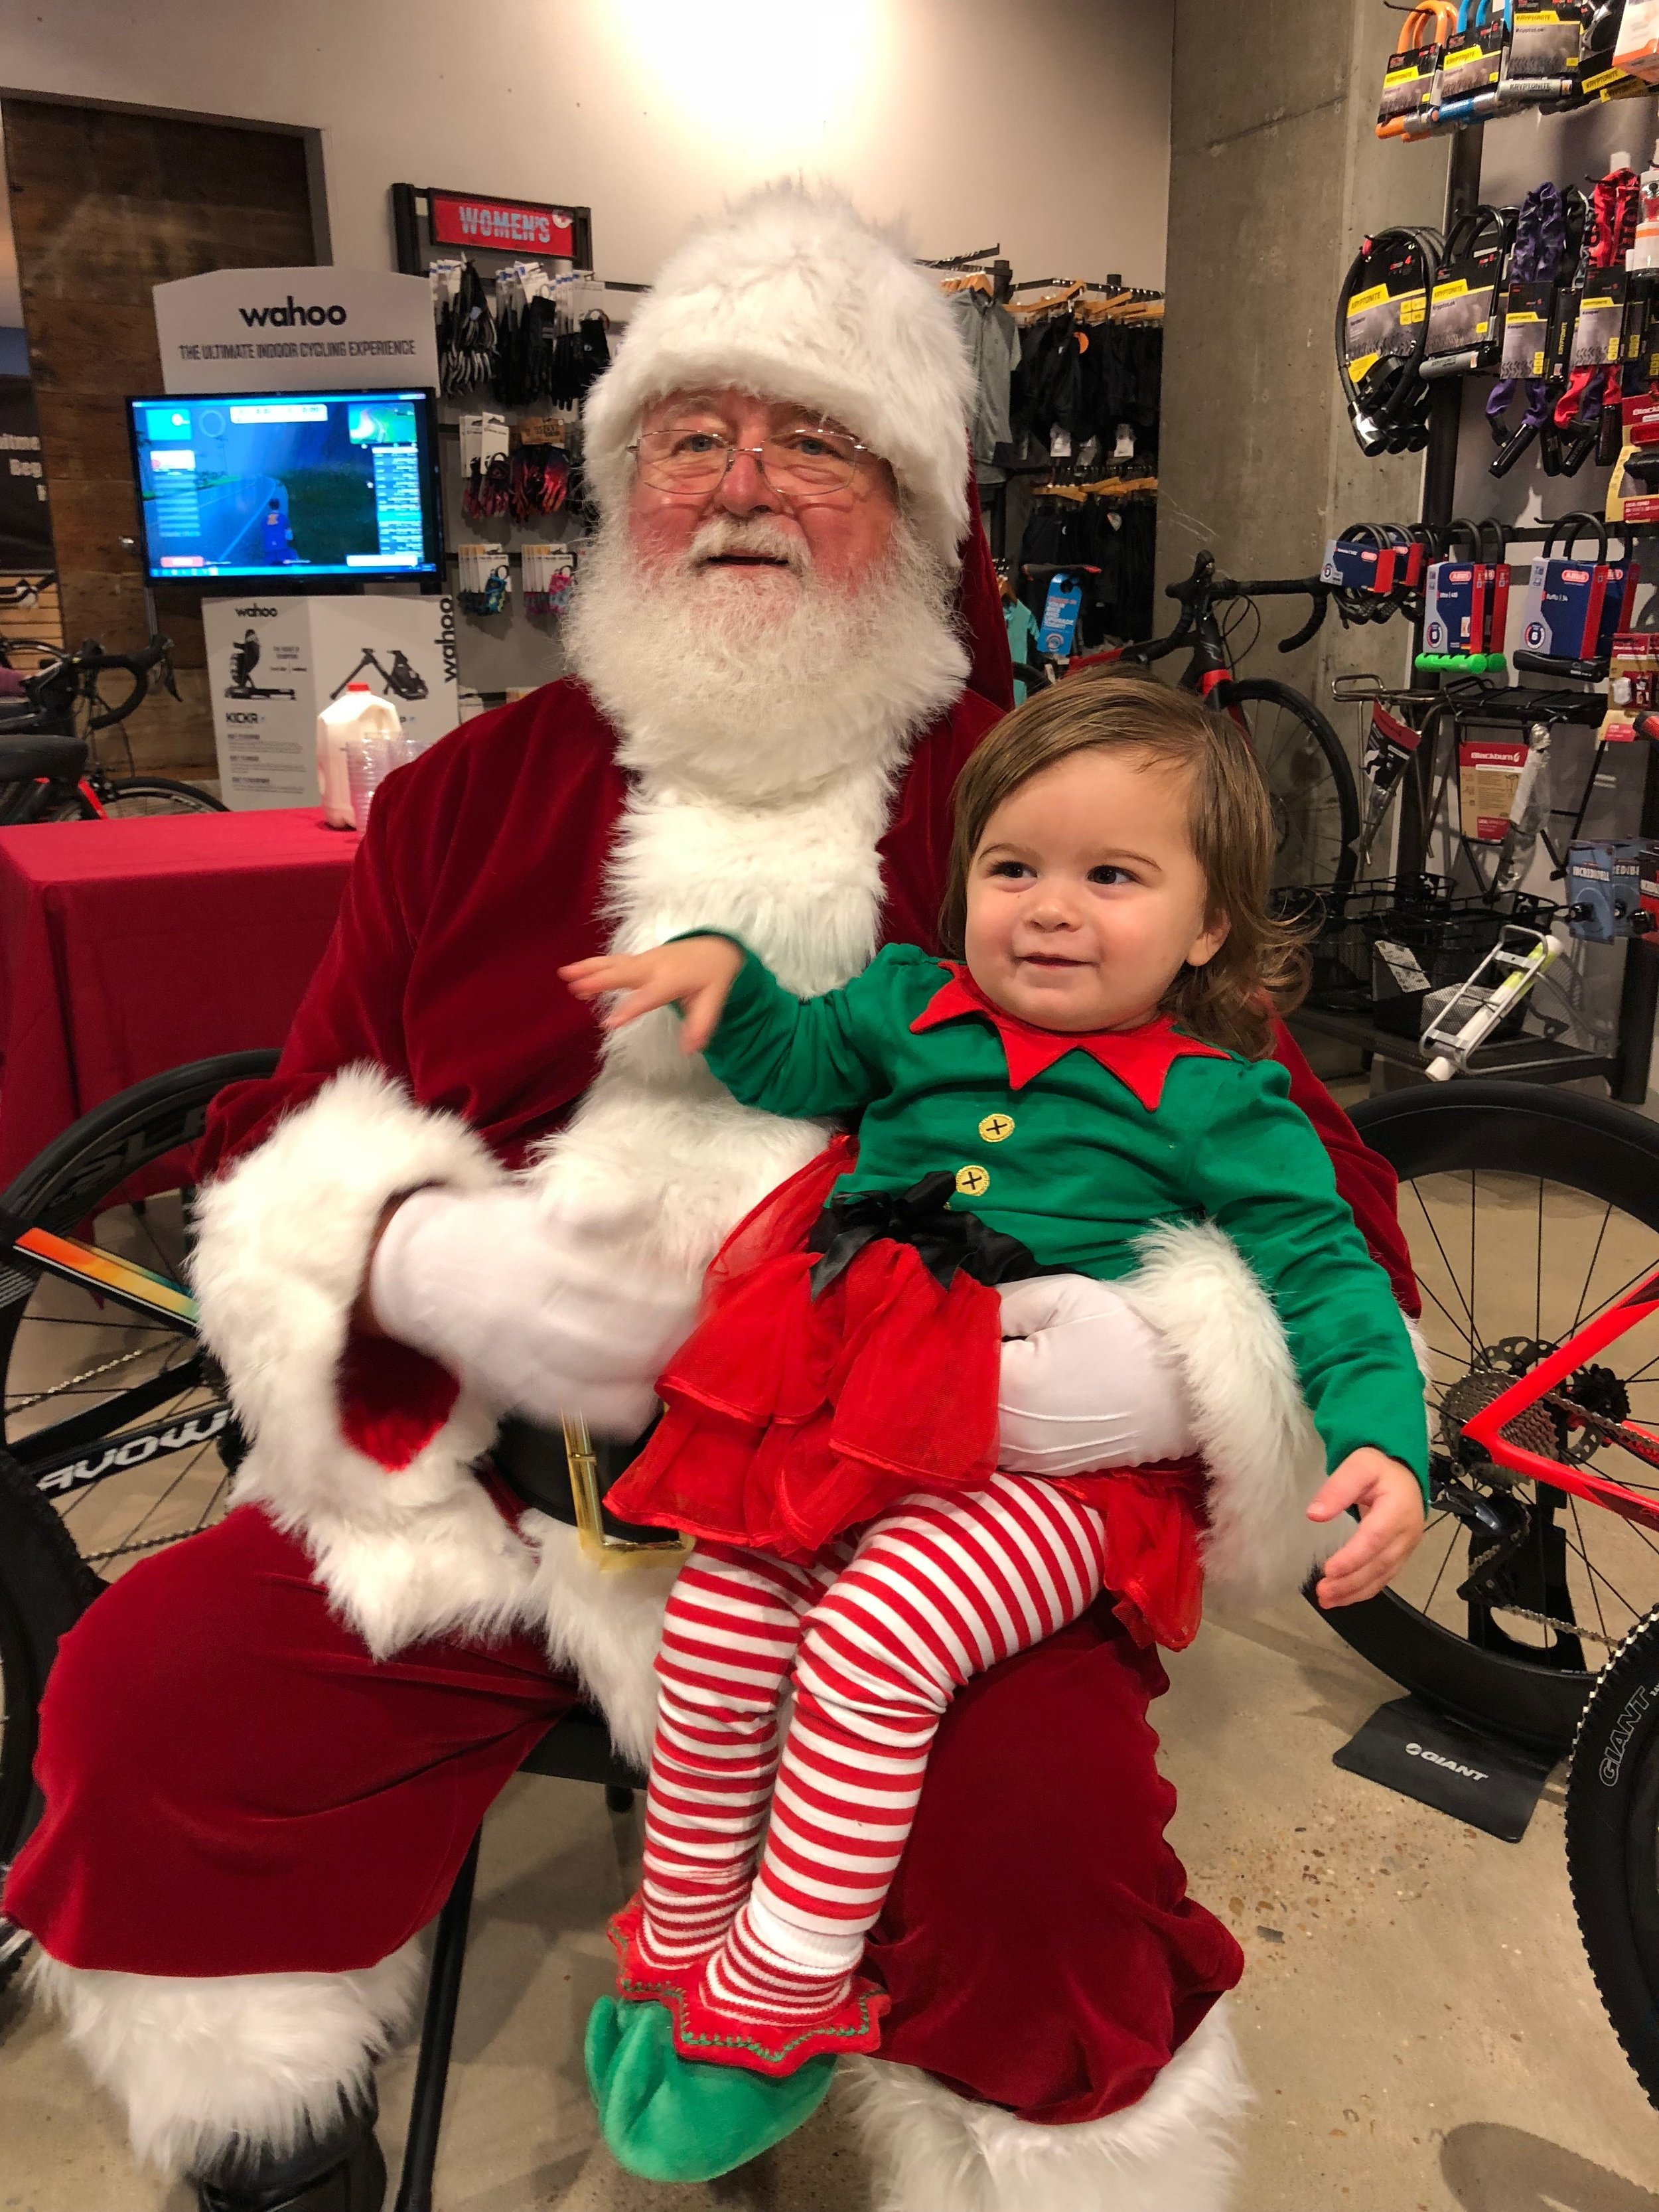 Adaline letting Santa (AKA her PaPa) know which toys from Bicycle World were on her wish list this year.